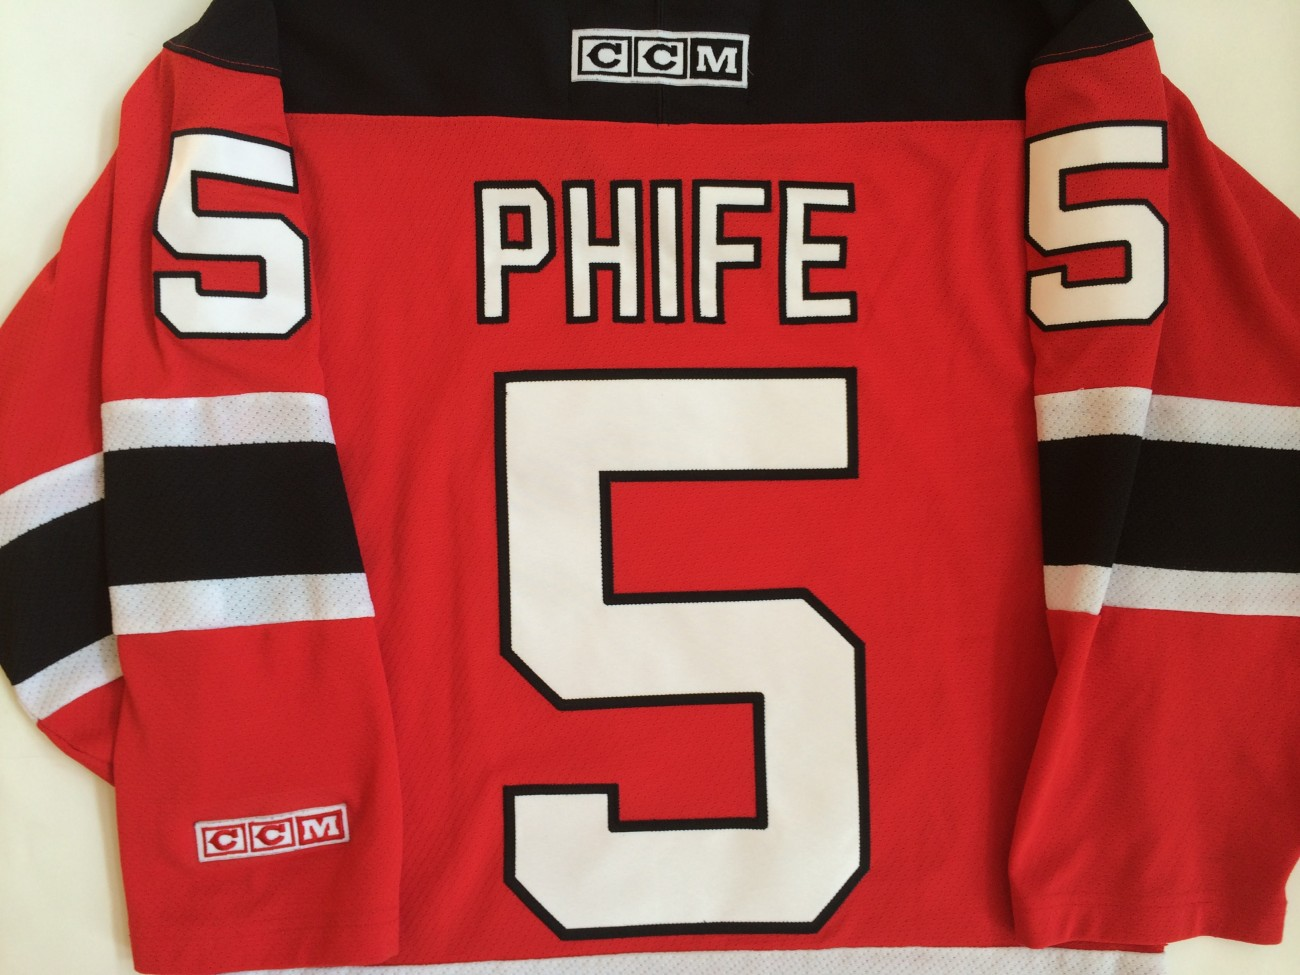 phife dawg a tribe called quest oh my god new jersey devils hockey jersey 1badf3846ddb